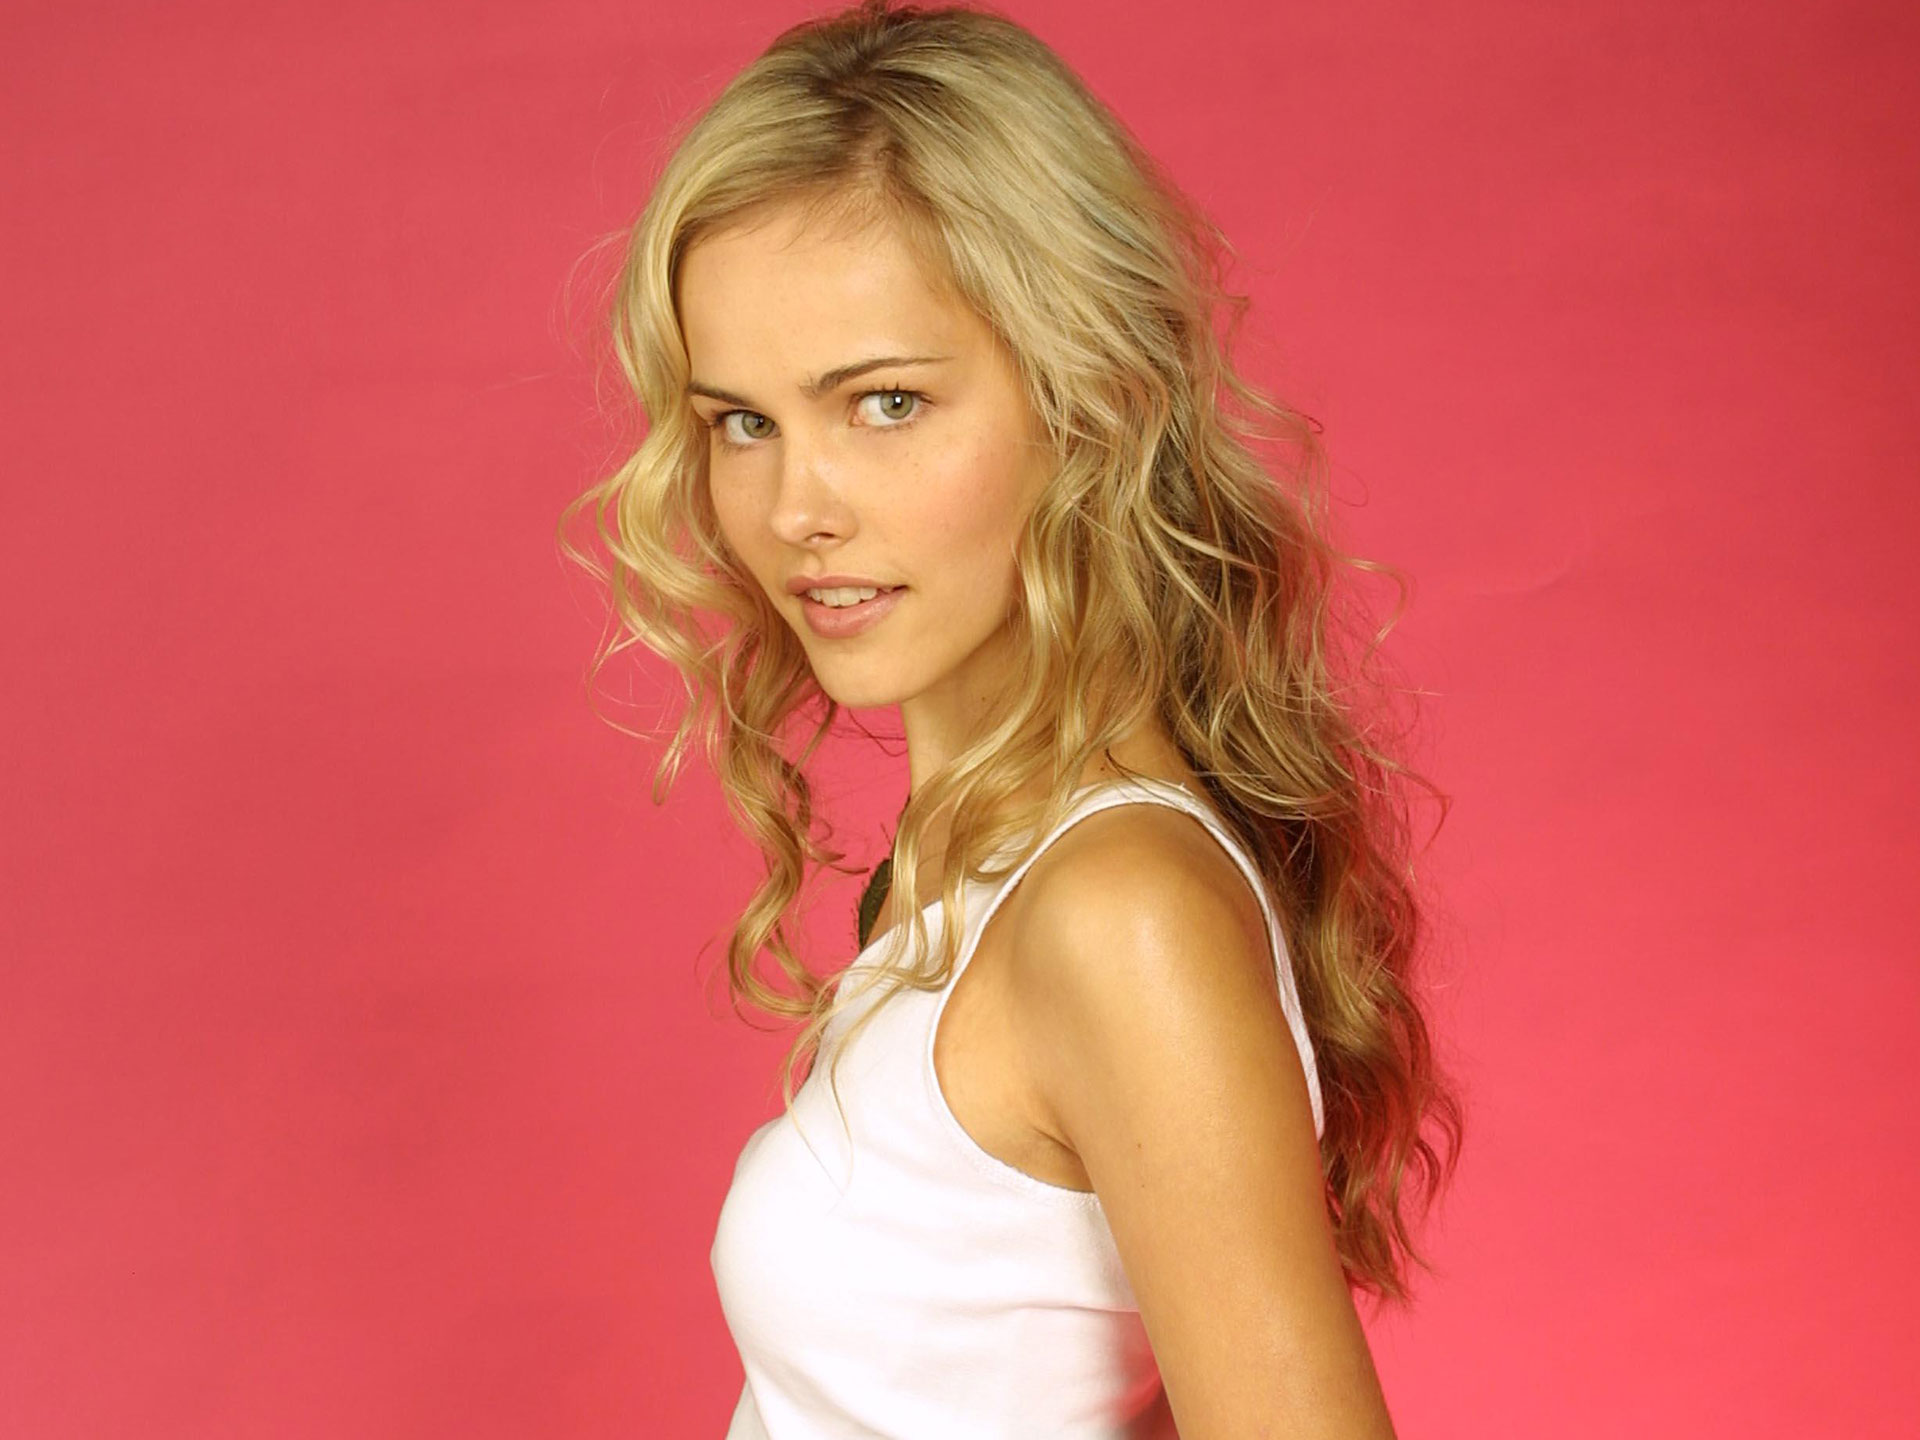 Transformers Girl Isabel Lucas Wallpapers HD Wallpapers 1920x1440